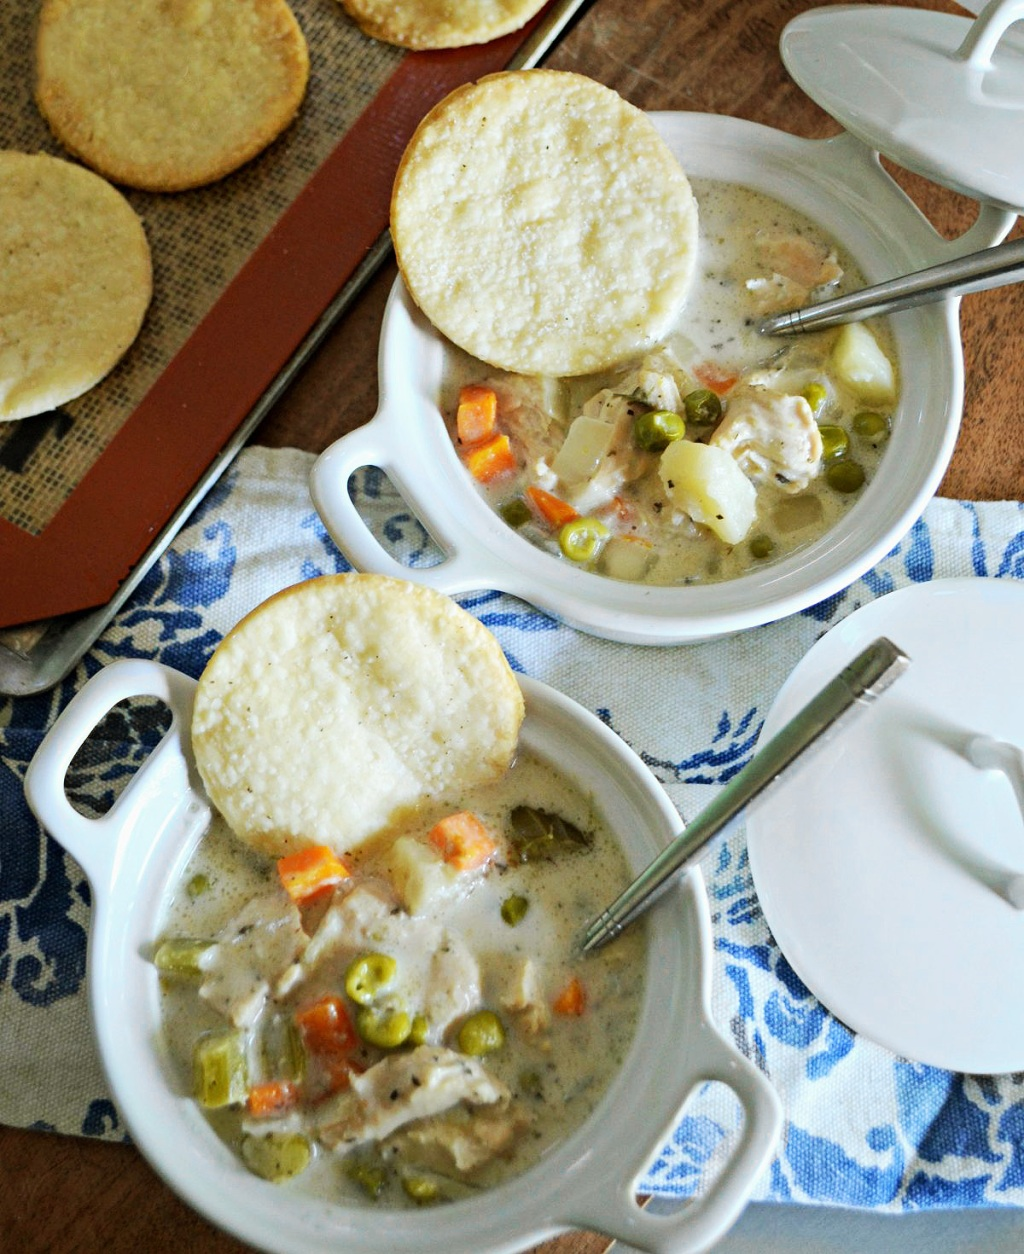 chicken pot pie soup in bowls on table